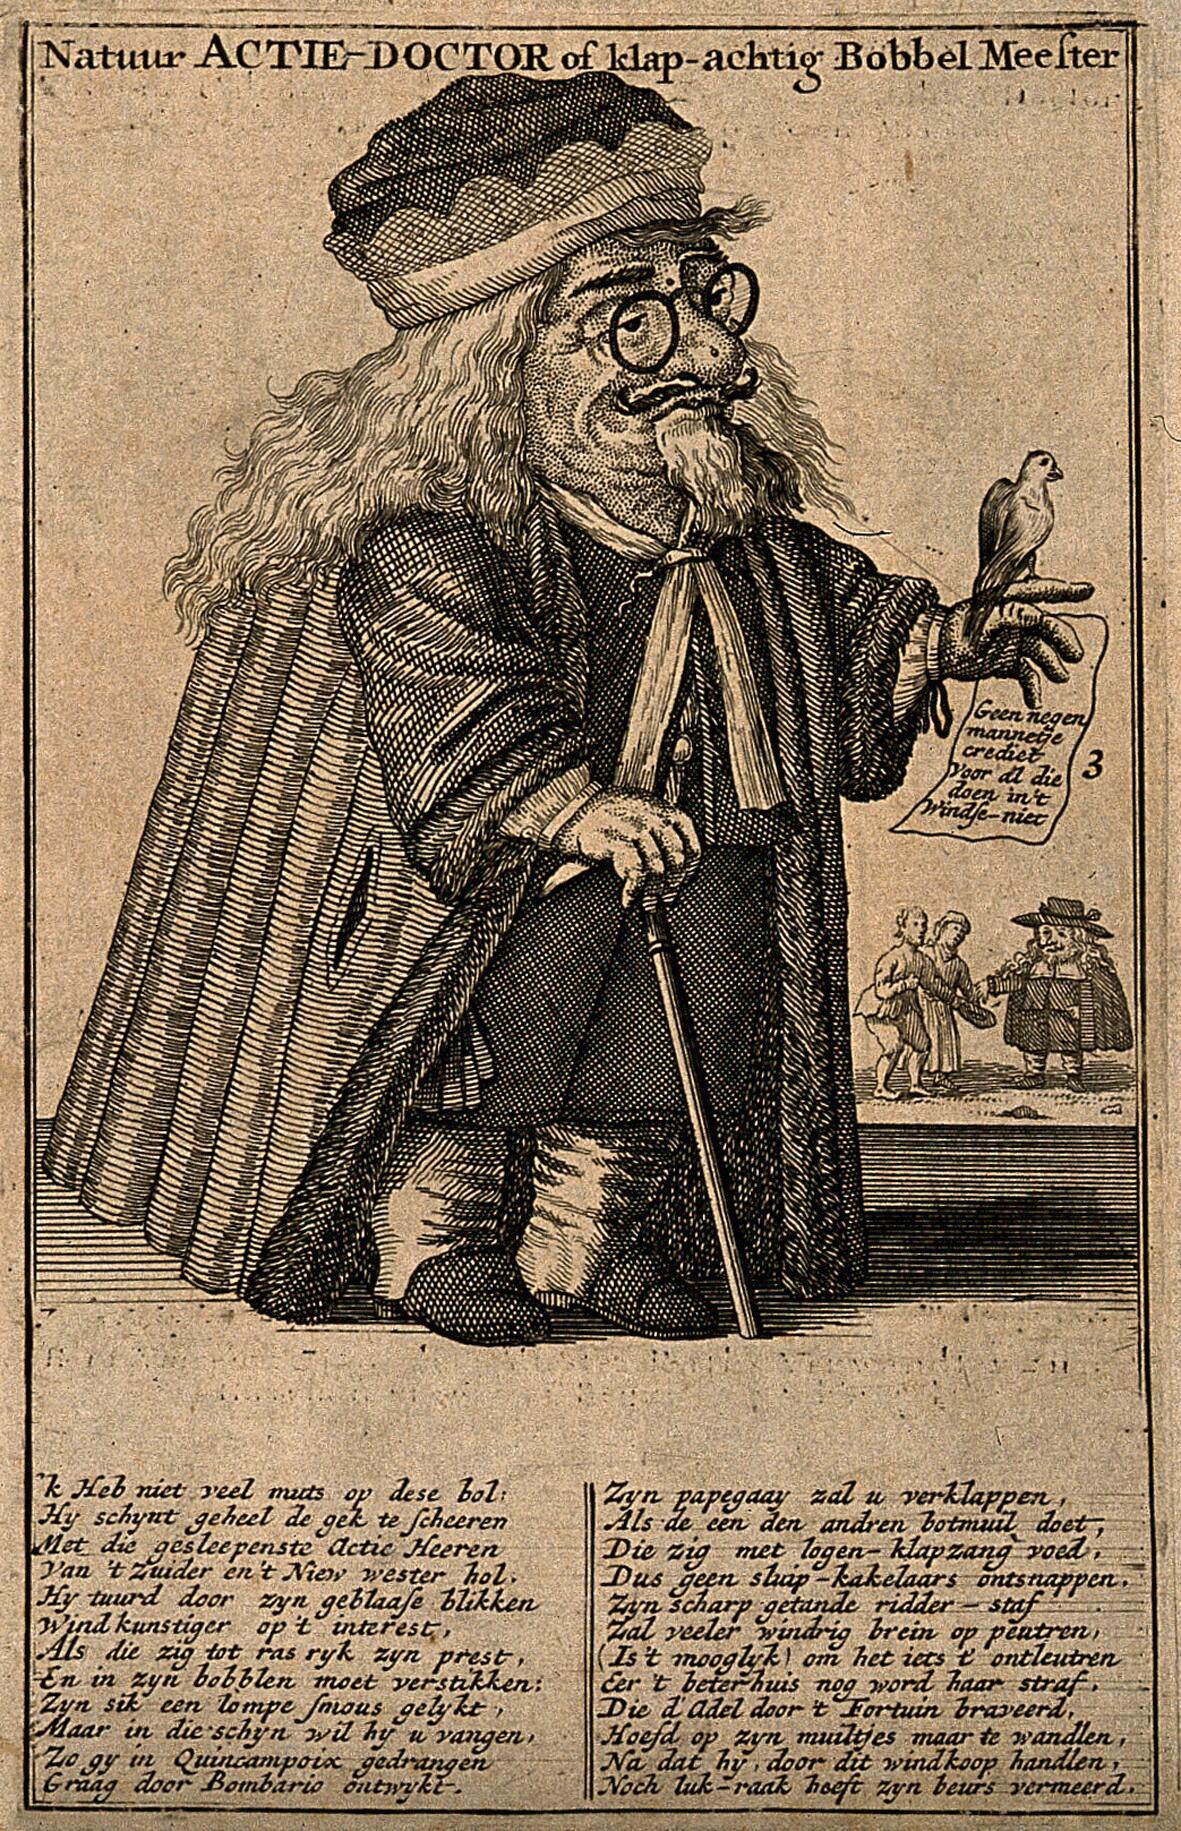 A Dutch Physician Involved In The Dutch Speculation Boom Of 1720 Holding A Parrot Engraving 1720 Wellcome Collection